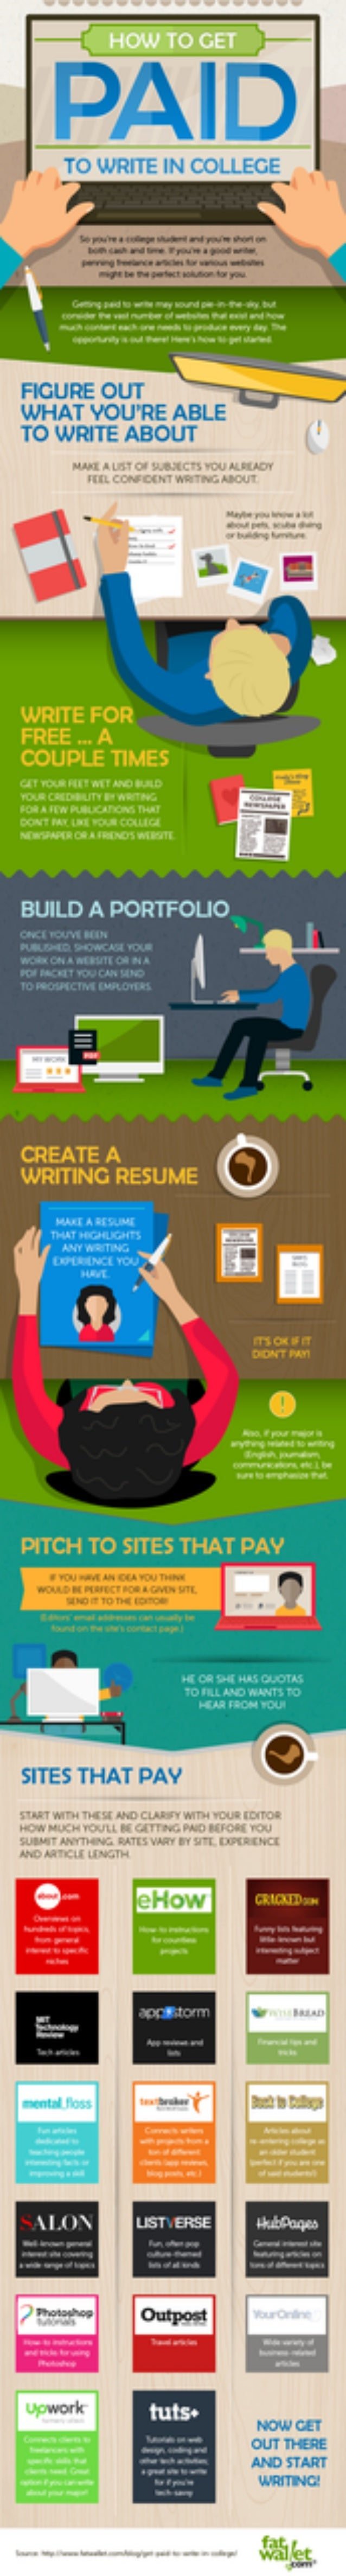 How to Make Money Writing in College?